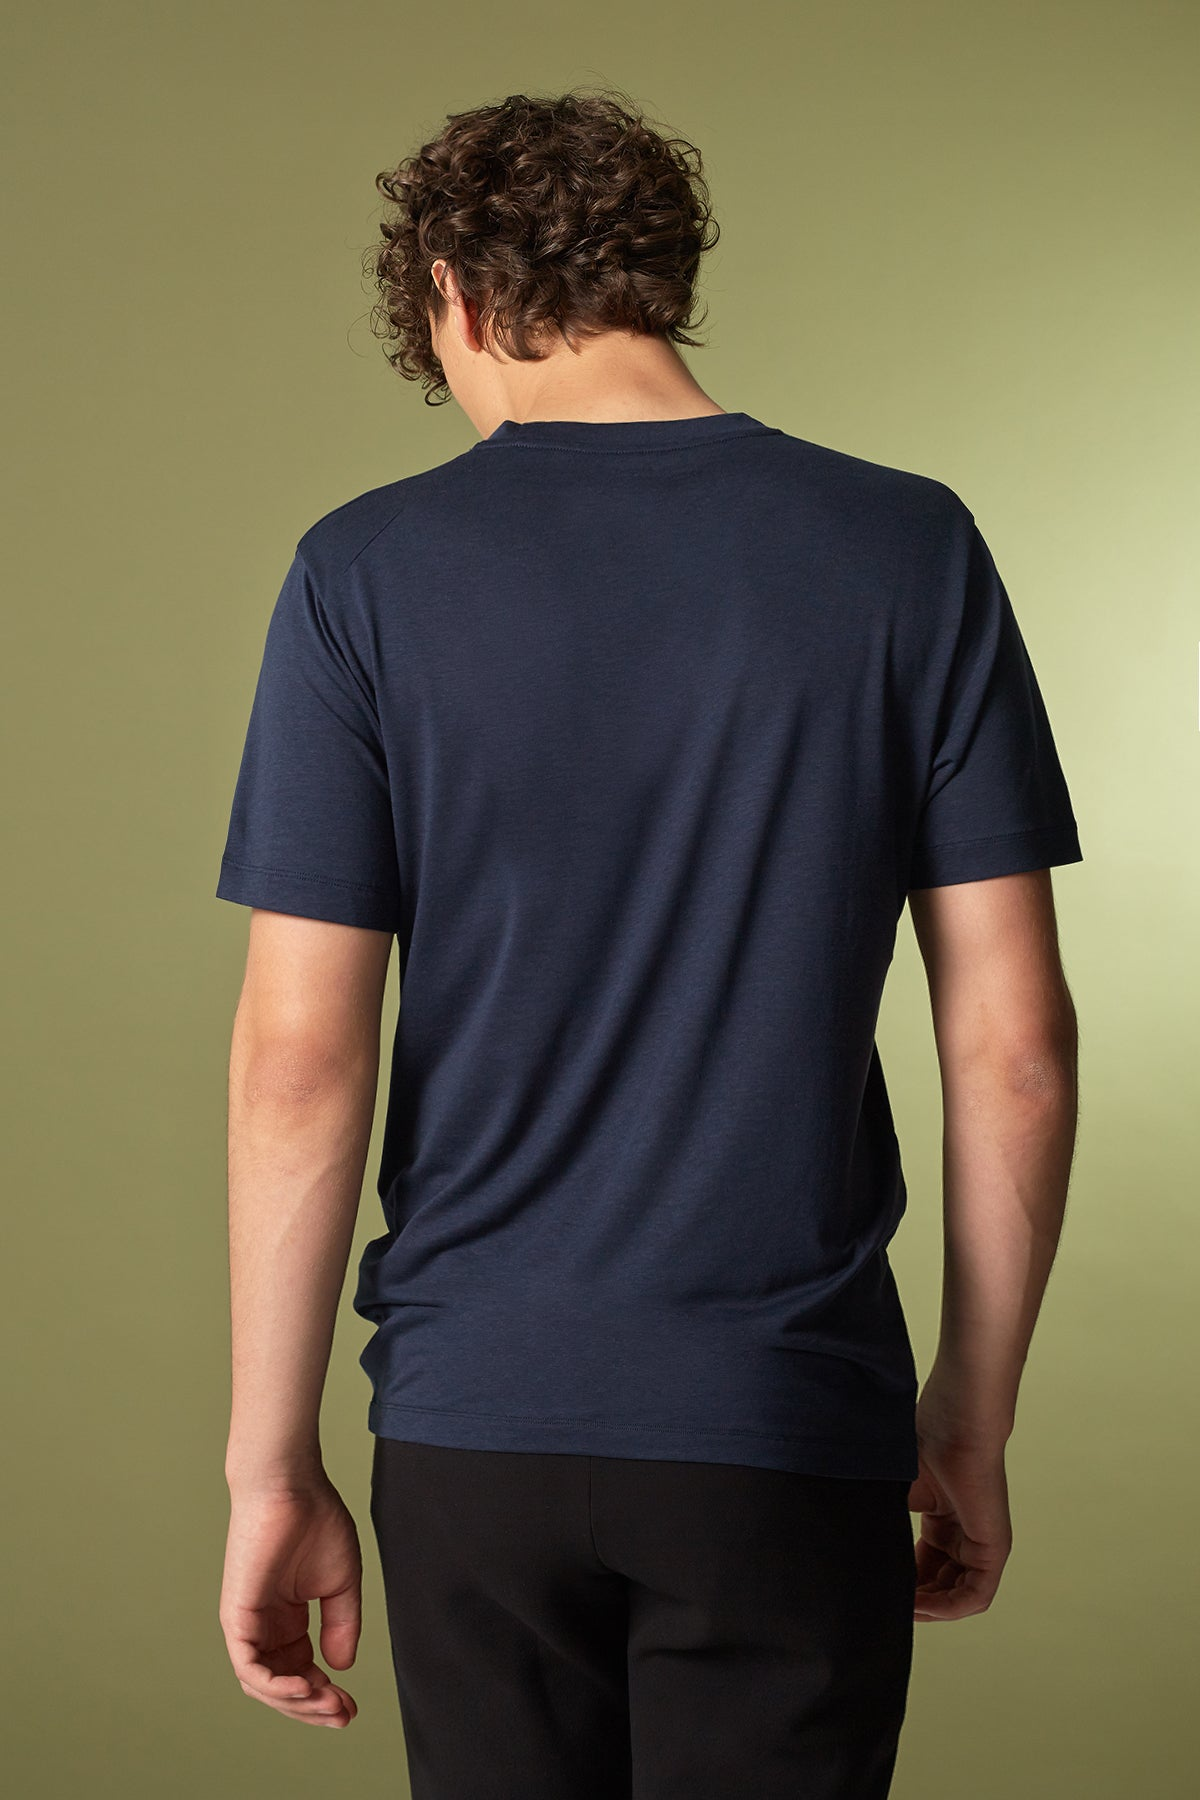 VEE T-Shirt in Tencel navy Passform slimfit hintere Ansicht